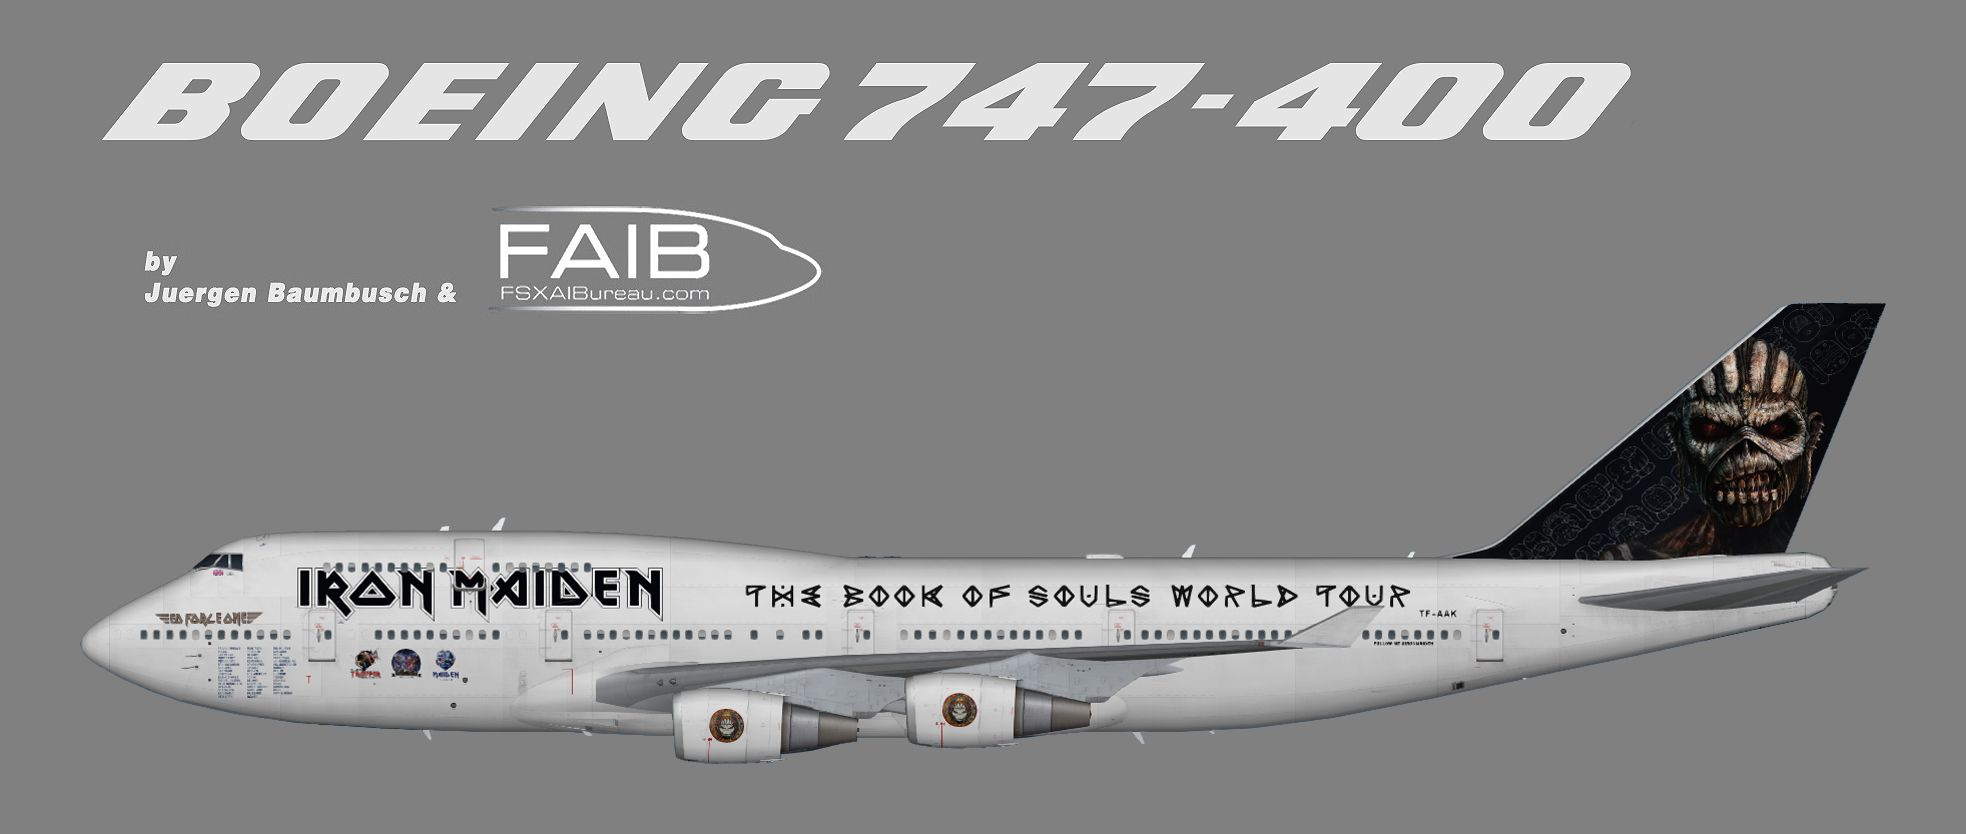 iron maiden's the book of souls world tour. boeing 747-400, opb air